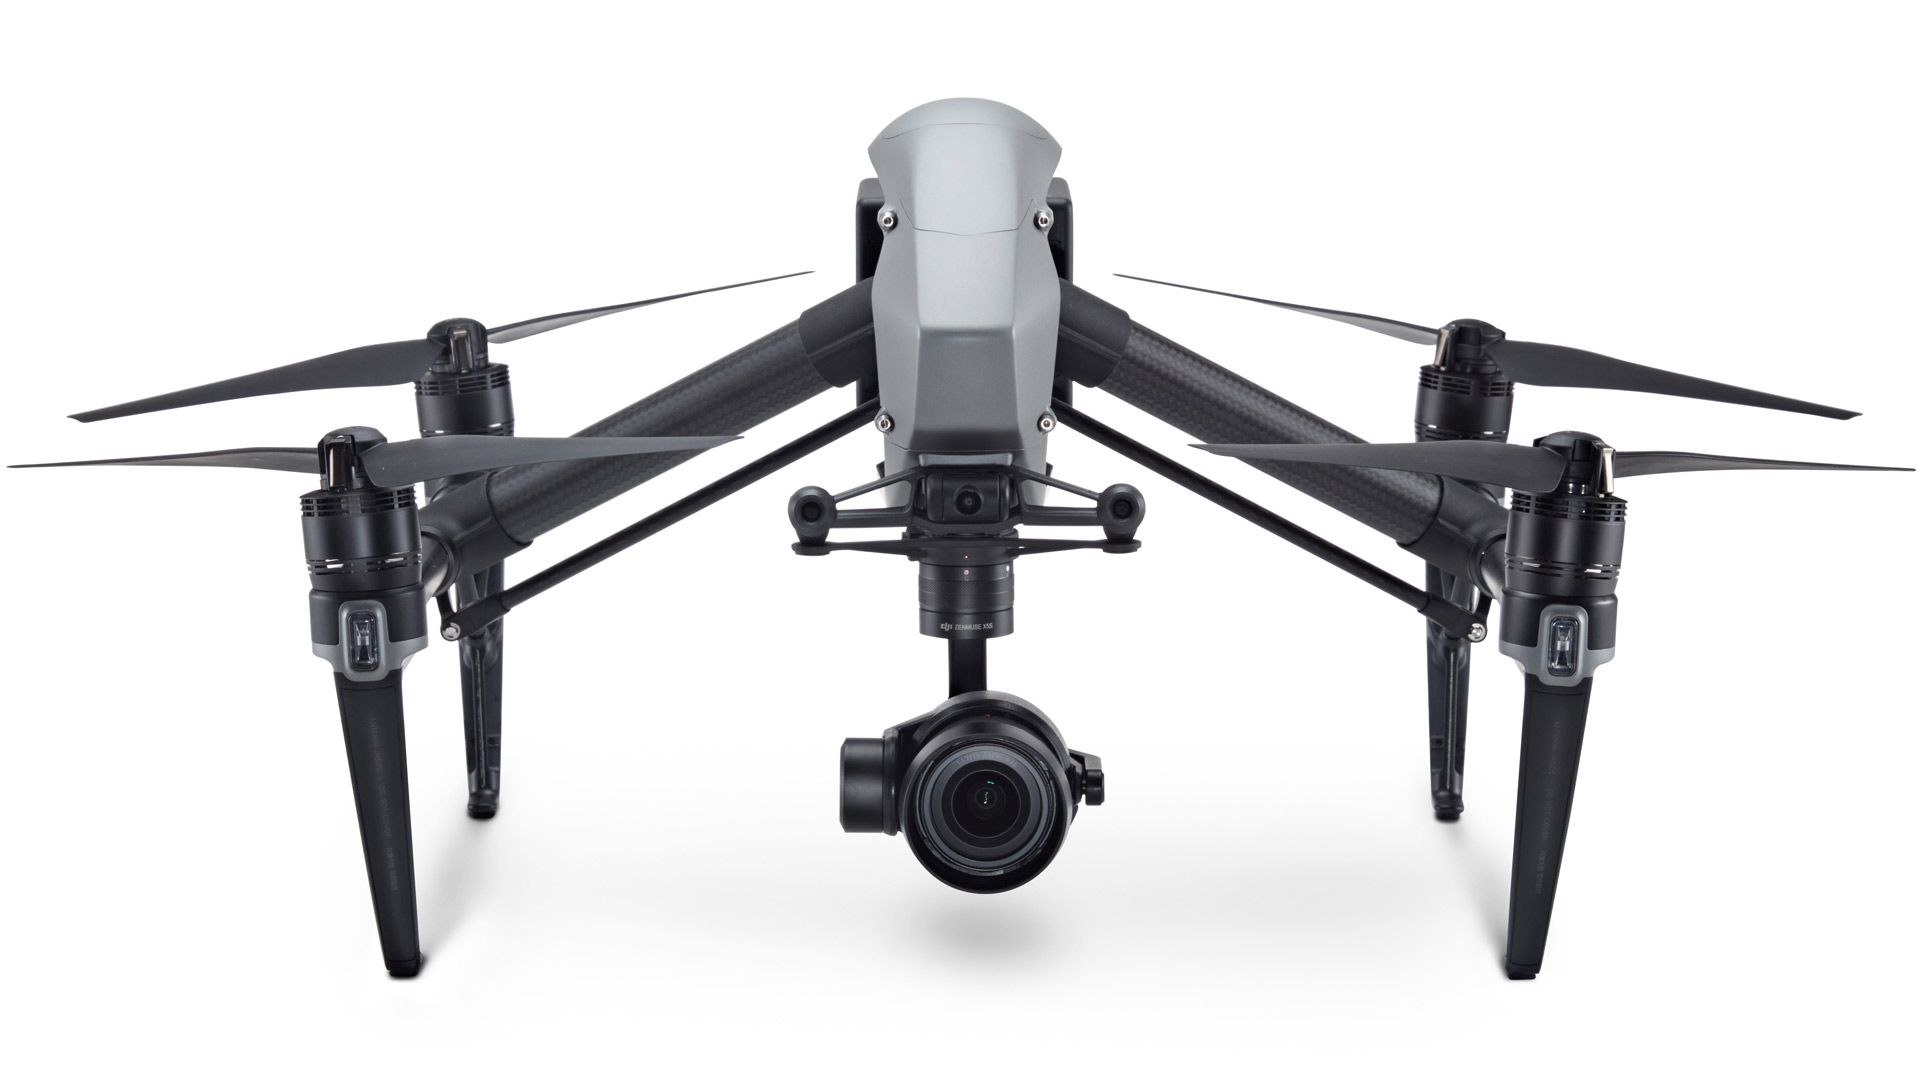 Guaranteed Best Price, Tailored Solutions, Expert Support: Industrial Drones for Sale Now at Skynex